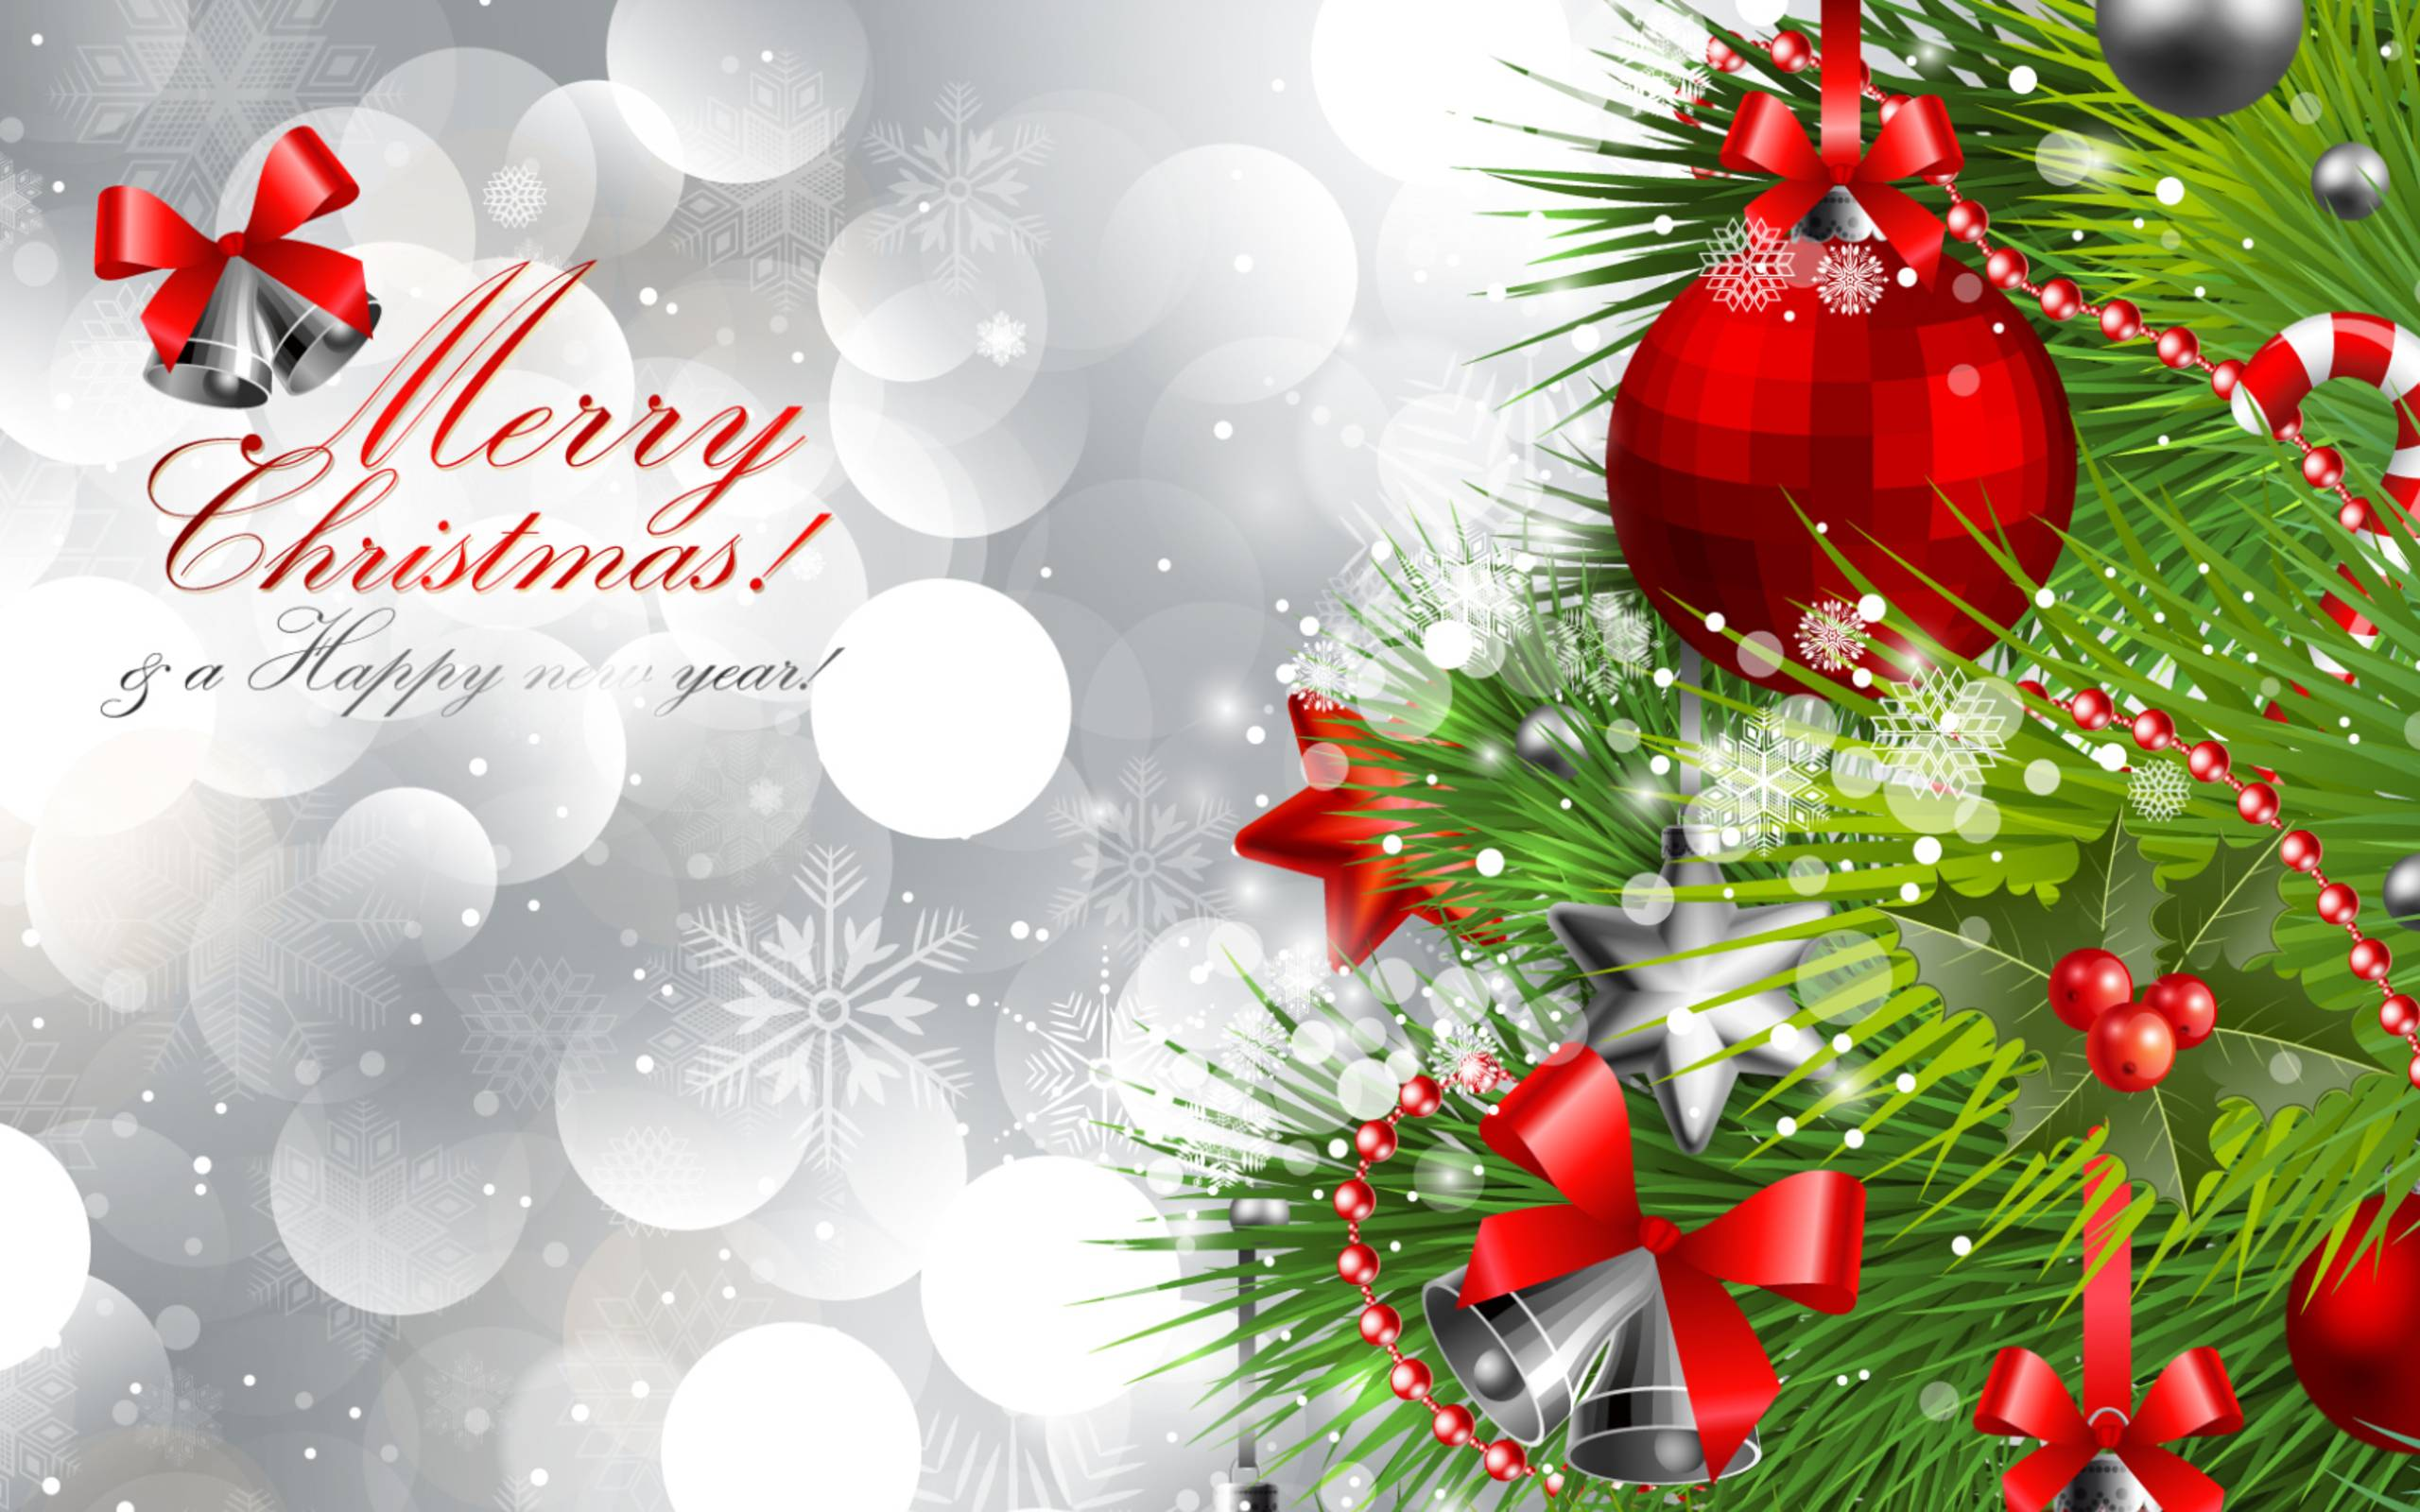 Wallpapers merry christmas, happy new year, christmas, happy new